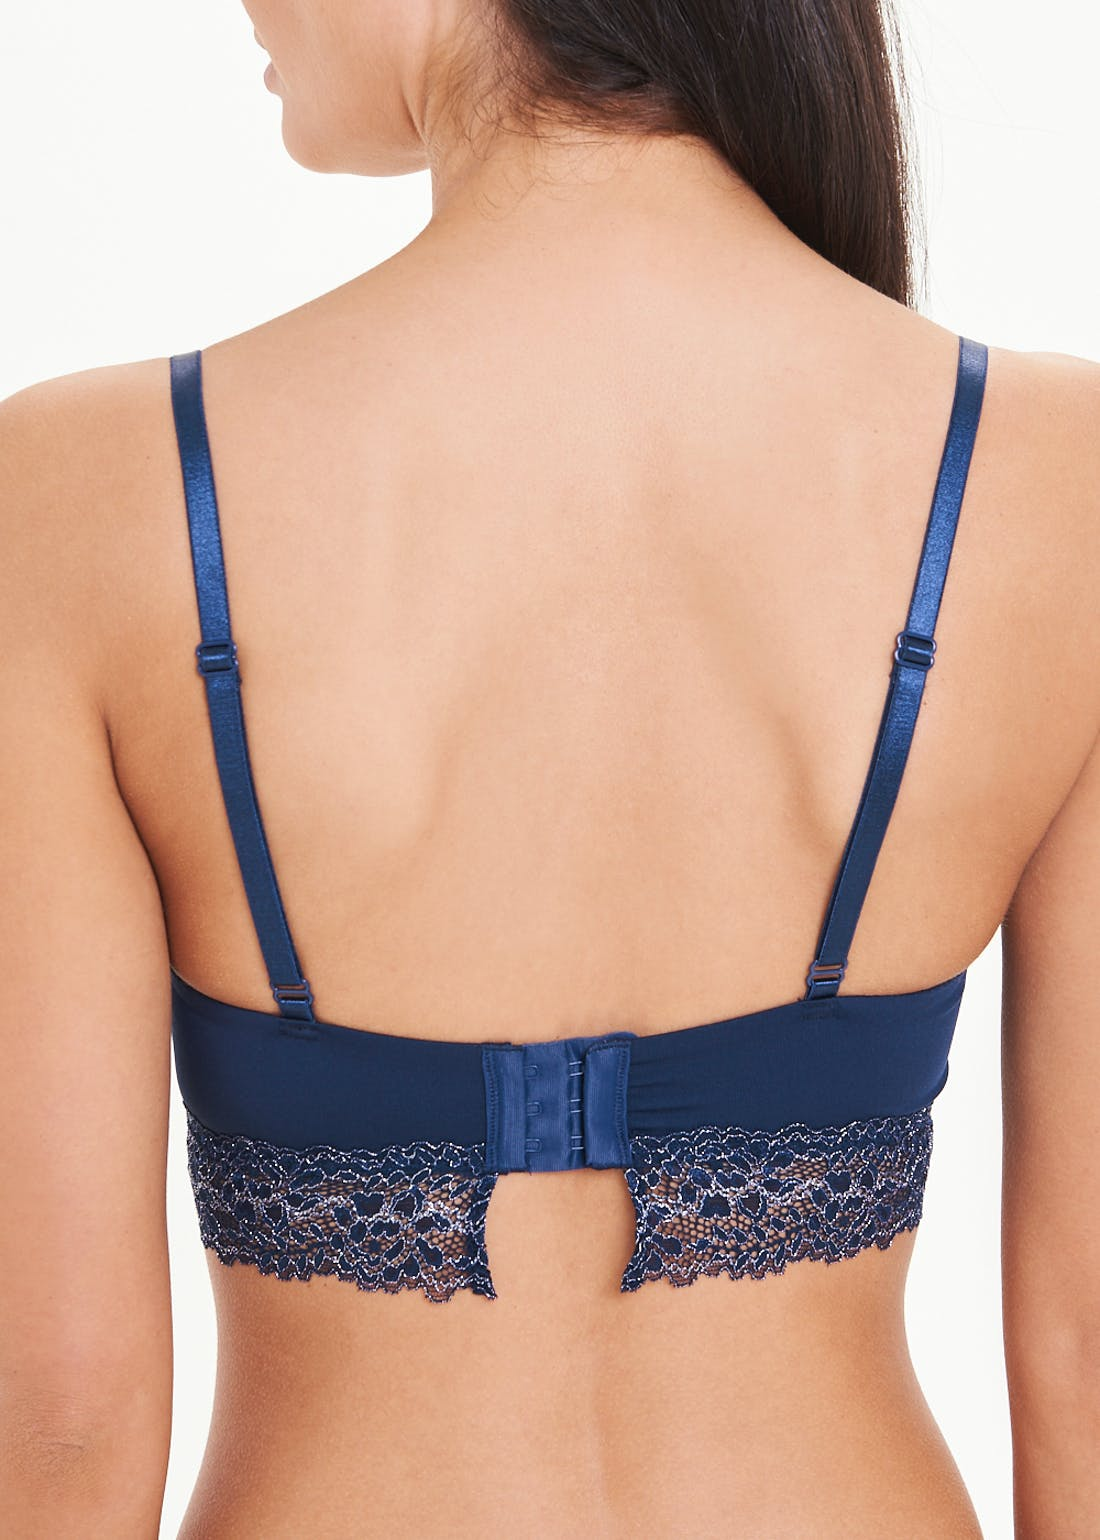 Shimmer Lace Trim Non-Wired Bra